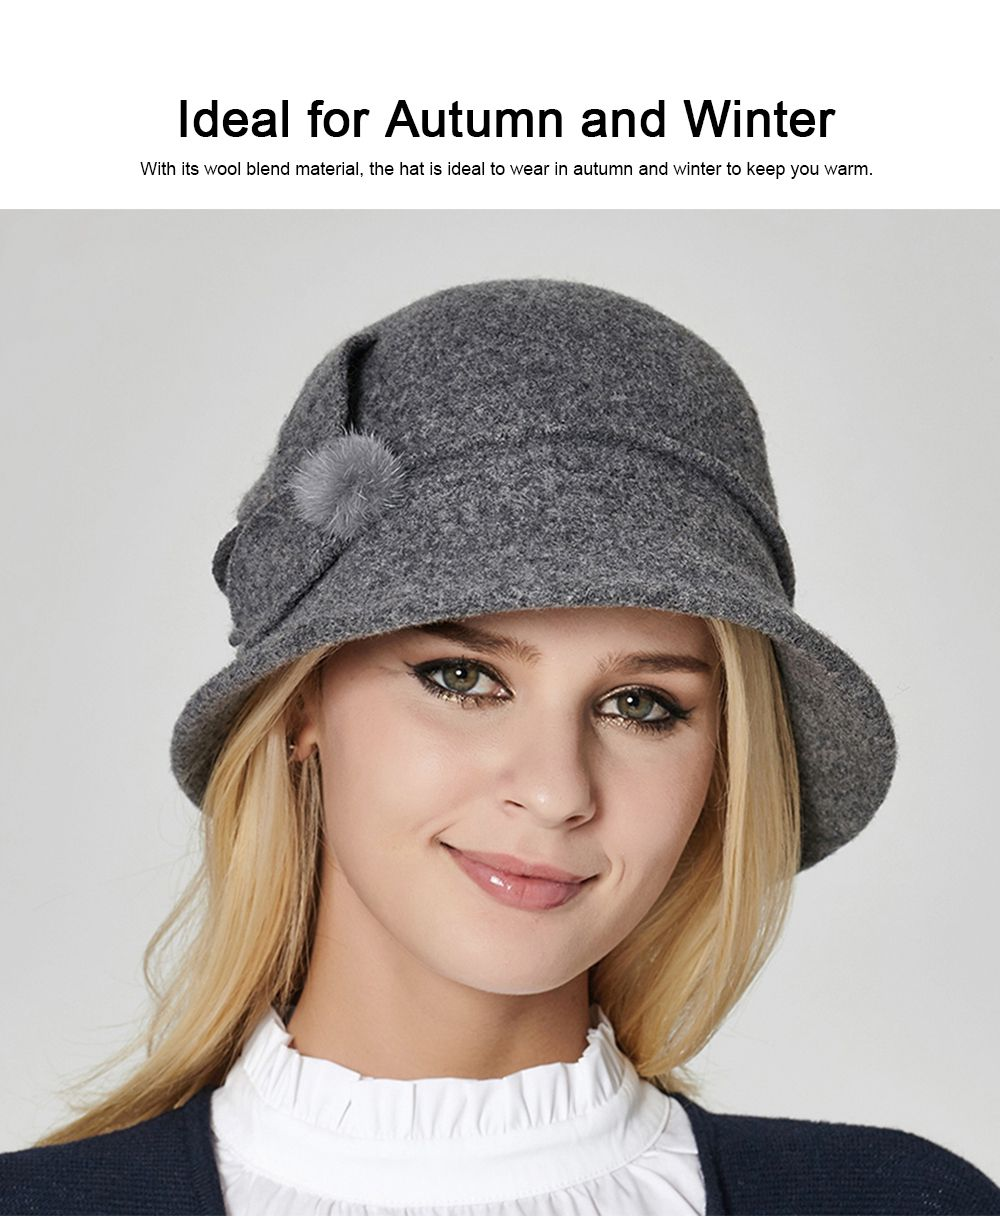 Woollen Bucket Hat for Women, Thickened Hat for Autumn & Winter Fashionable Warm Fisherman Hat 1